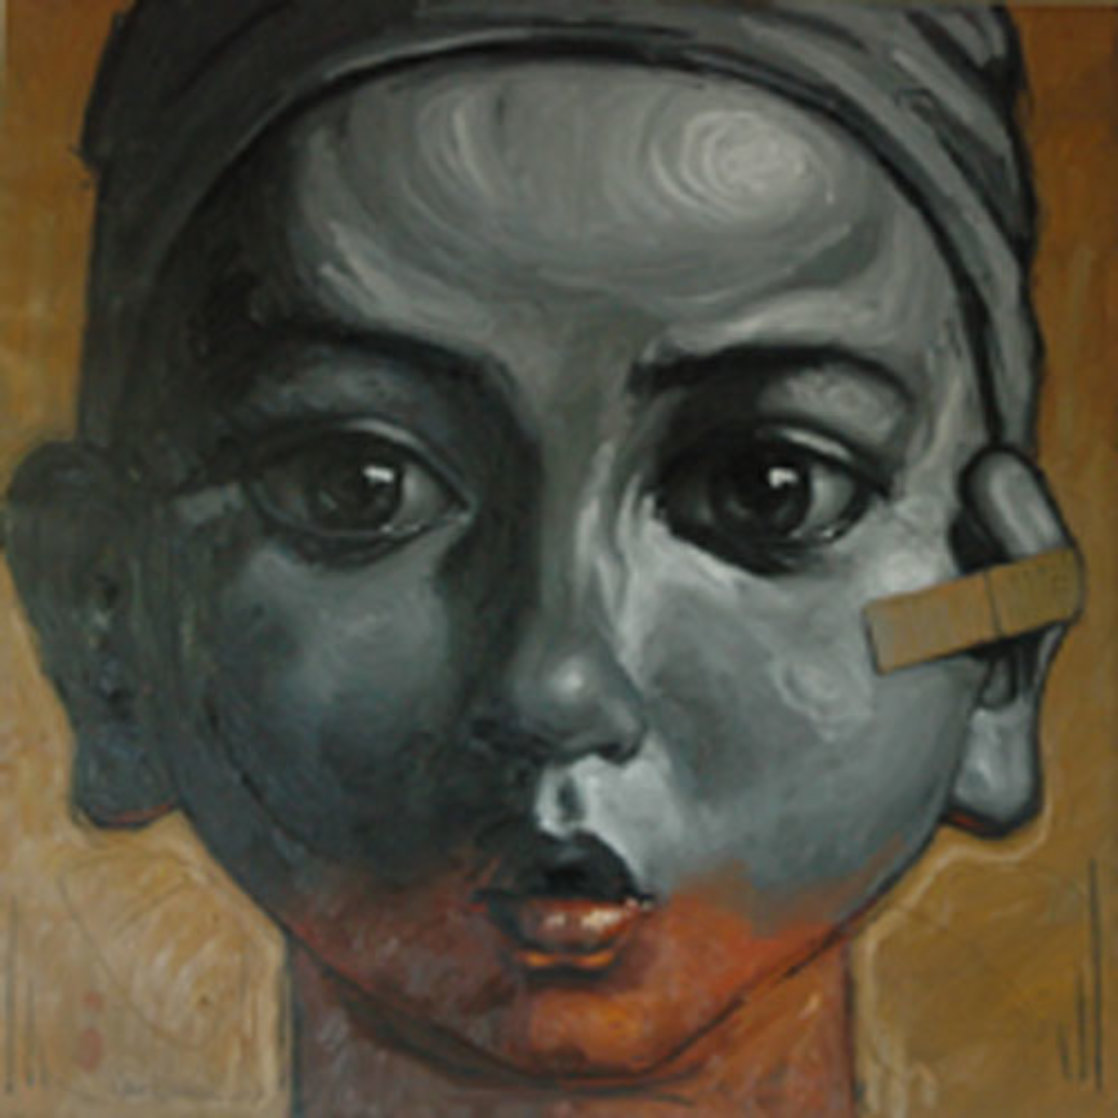 Boy Who Didn't Want to Hear with his Left Ear 47x47 Super Huge Original Painting by Nico Vrielink